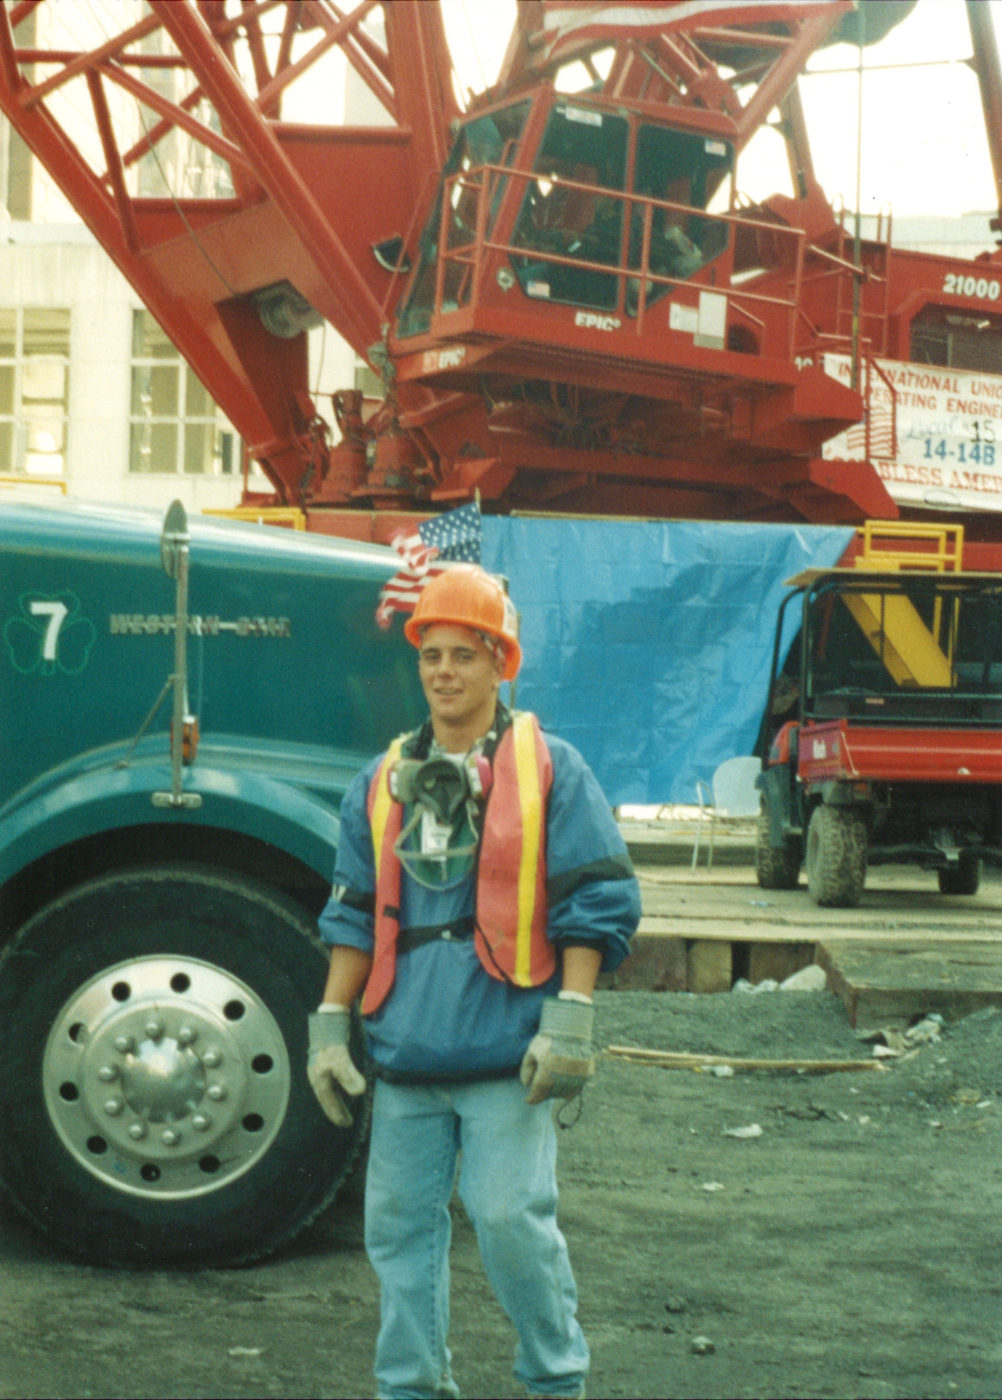 Unknown construction worker on site